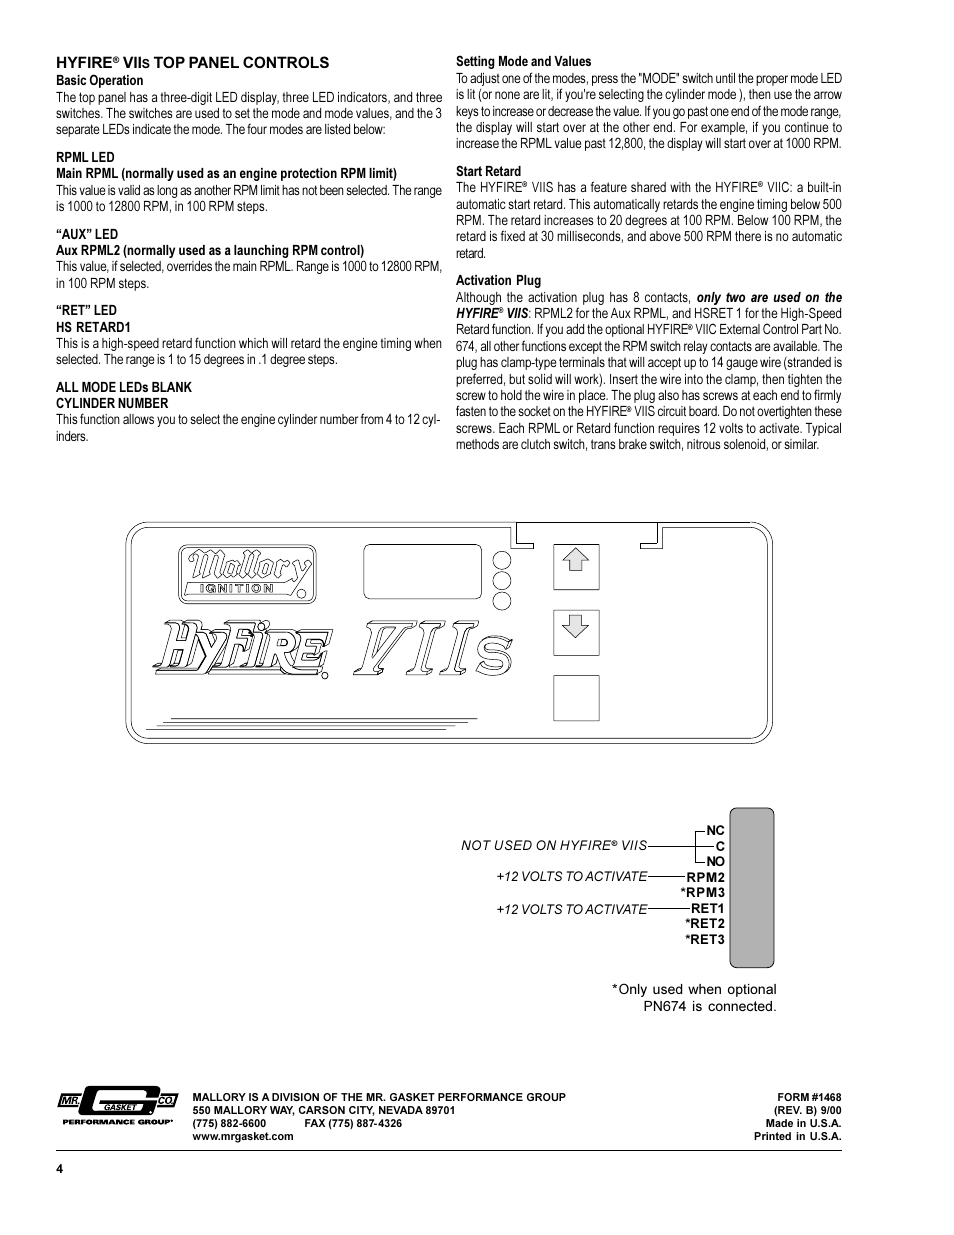 Accuspark Electronic Ignition Wiring Diagram 44 Mallory Diagrams Ford Hyfire Viis Sportsman Cd System 667s Page4resize665